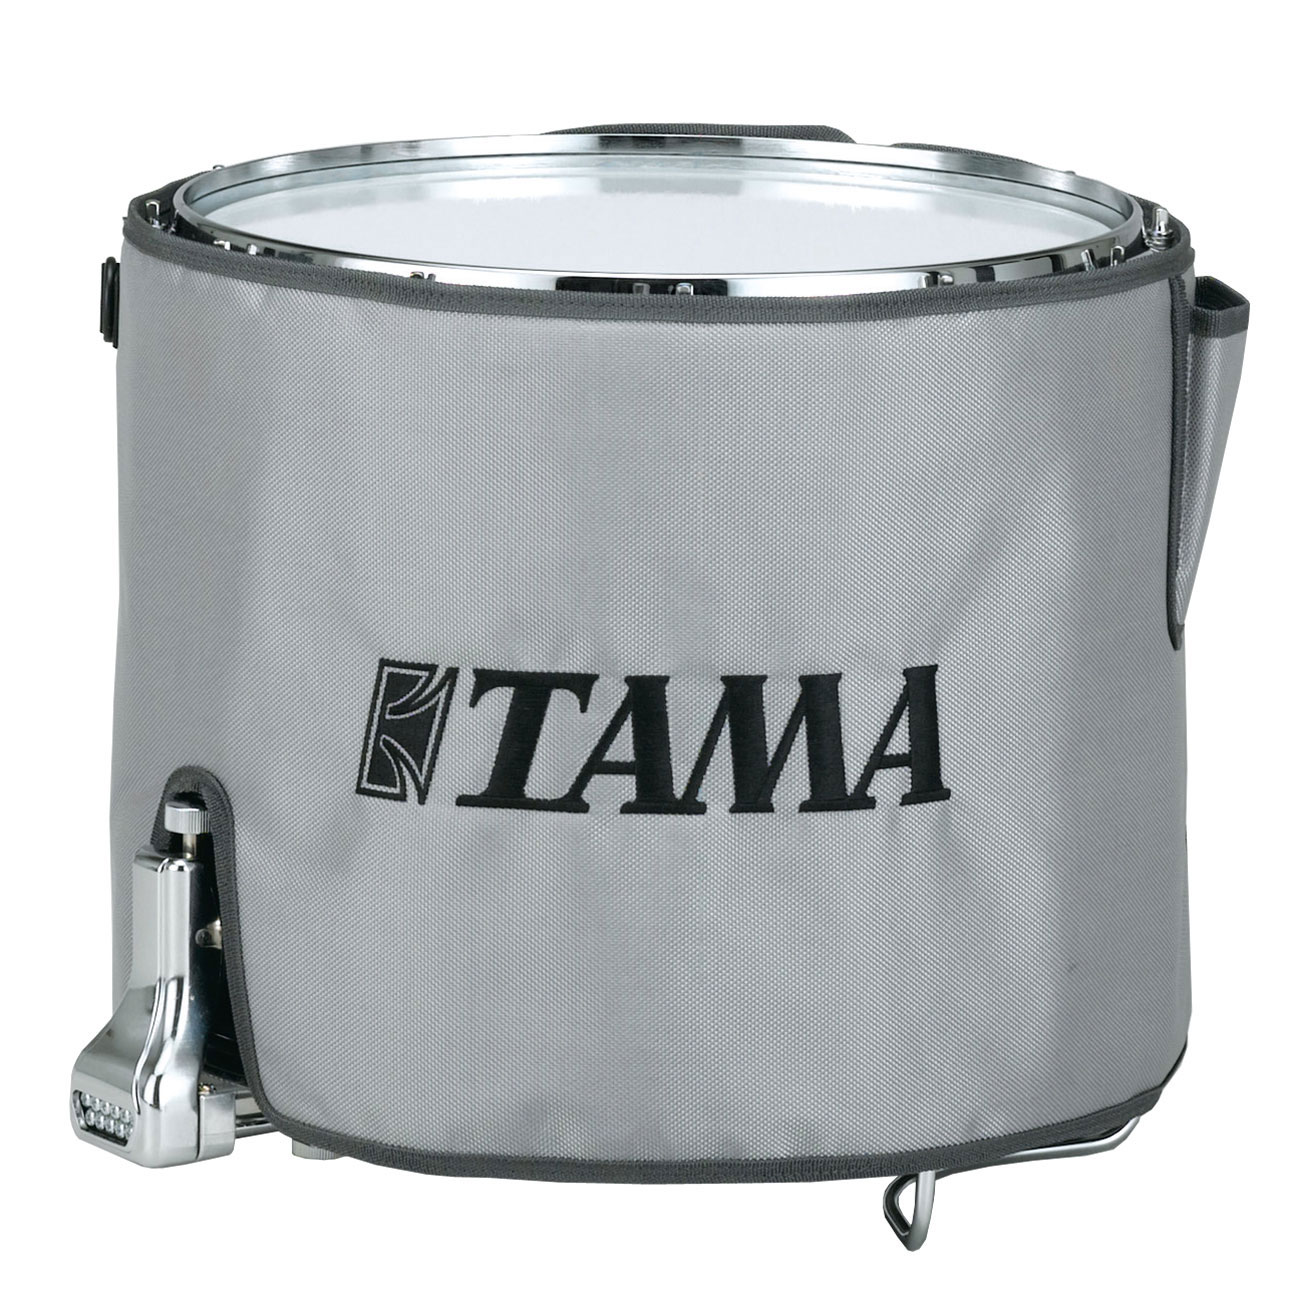 "Tama 12"" (Deep) x 14"" (Diameter) Marching Snare Drum Cover"